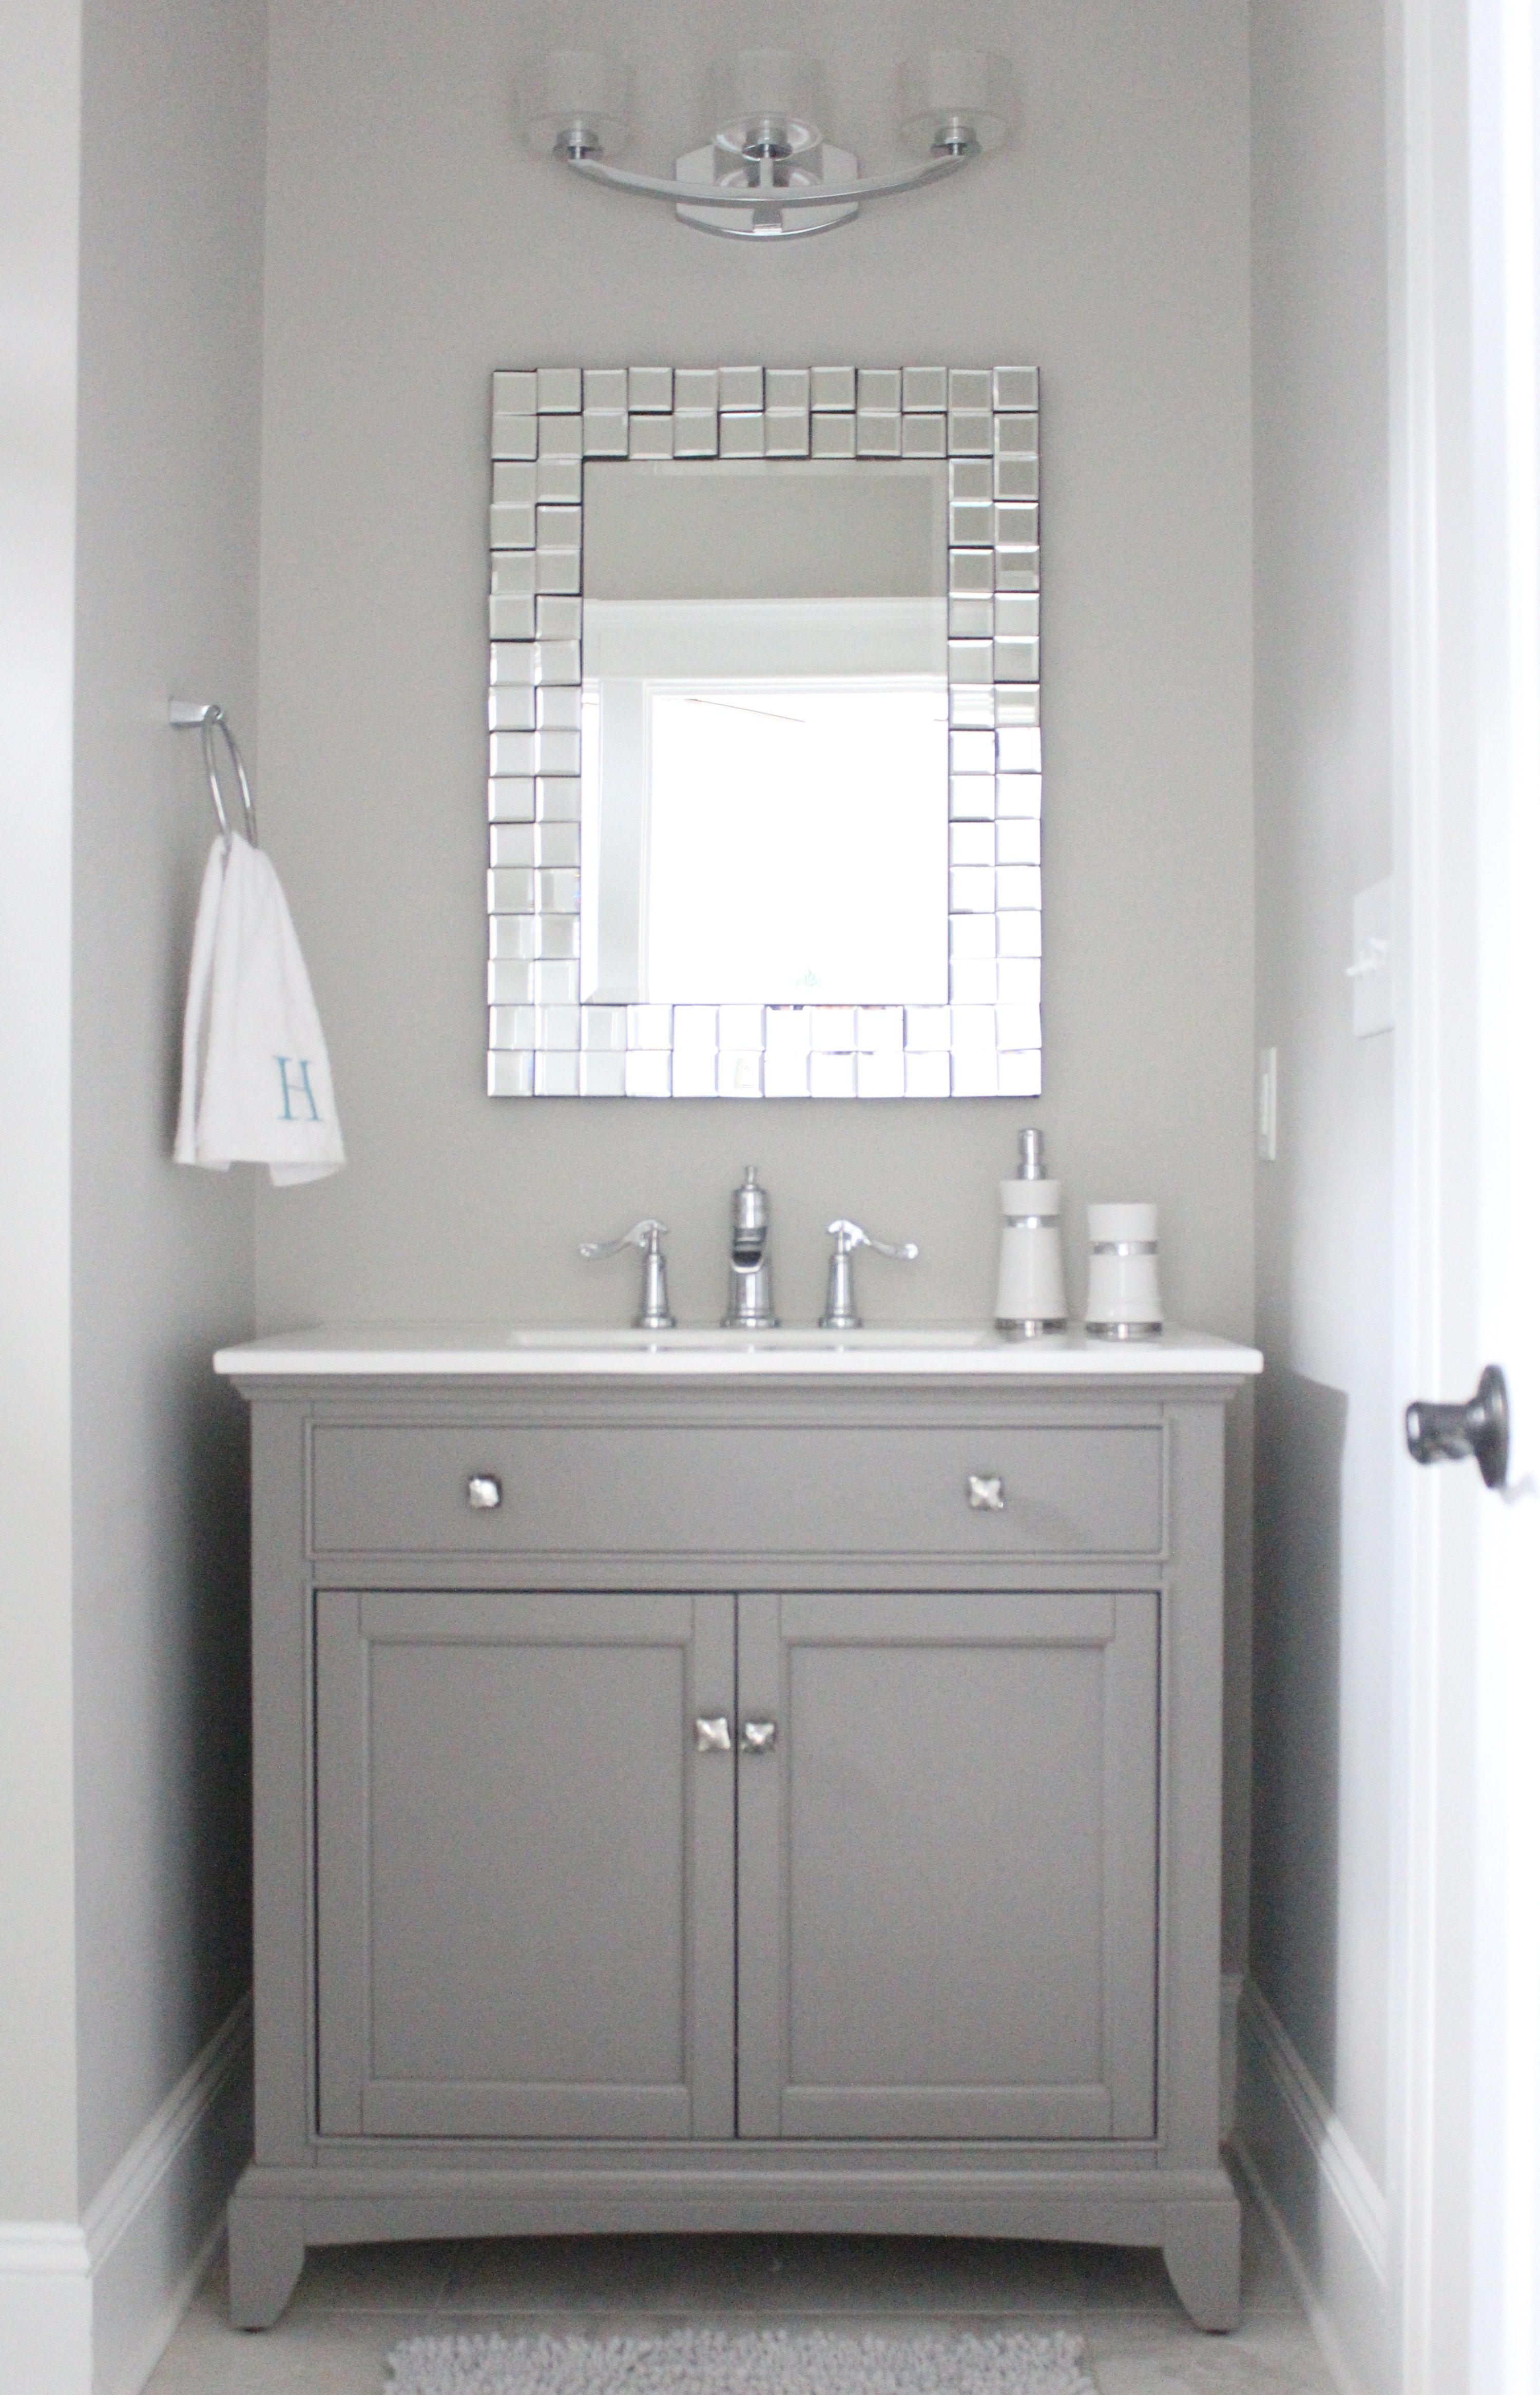 Grey and white bathroom with mirror Paint color Repose Gray by